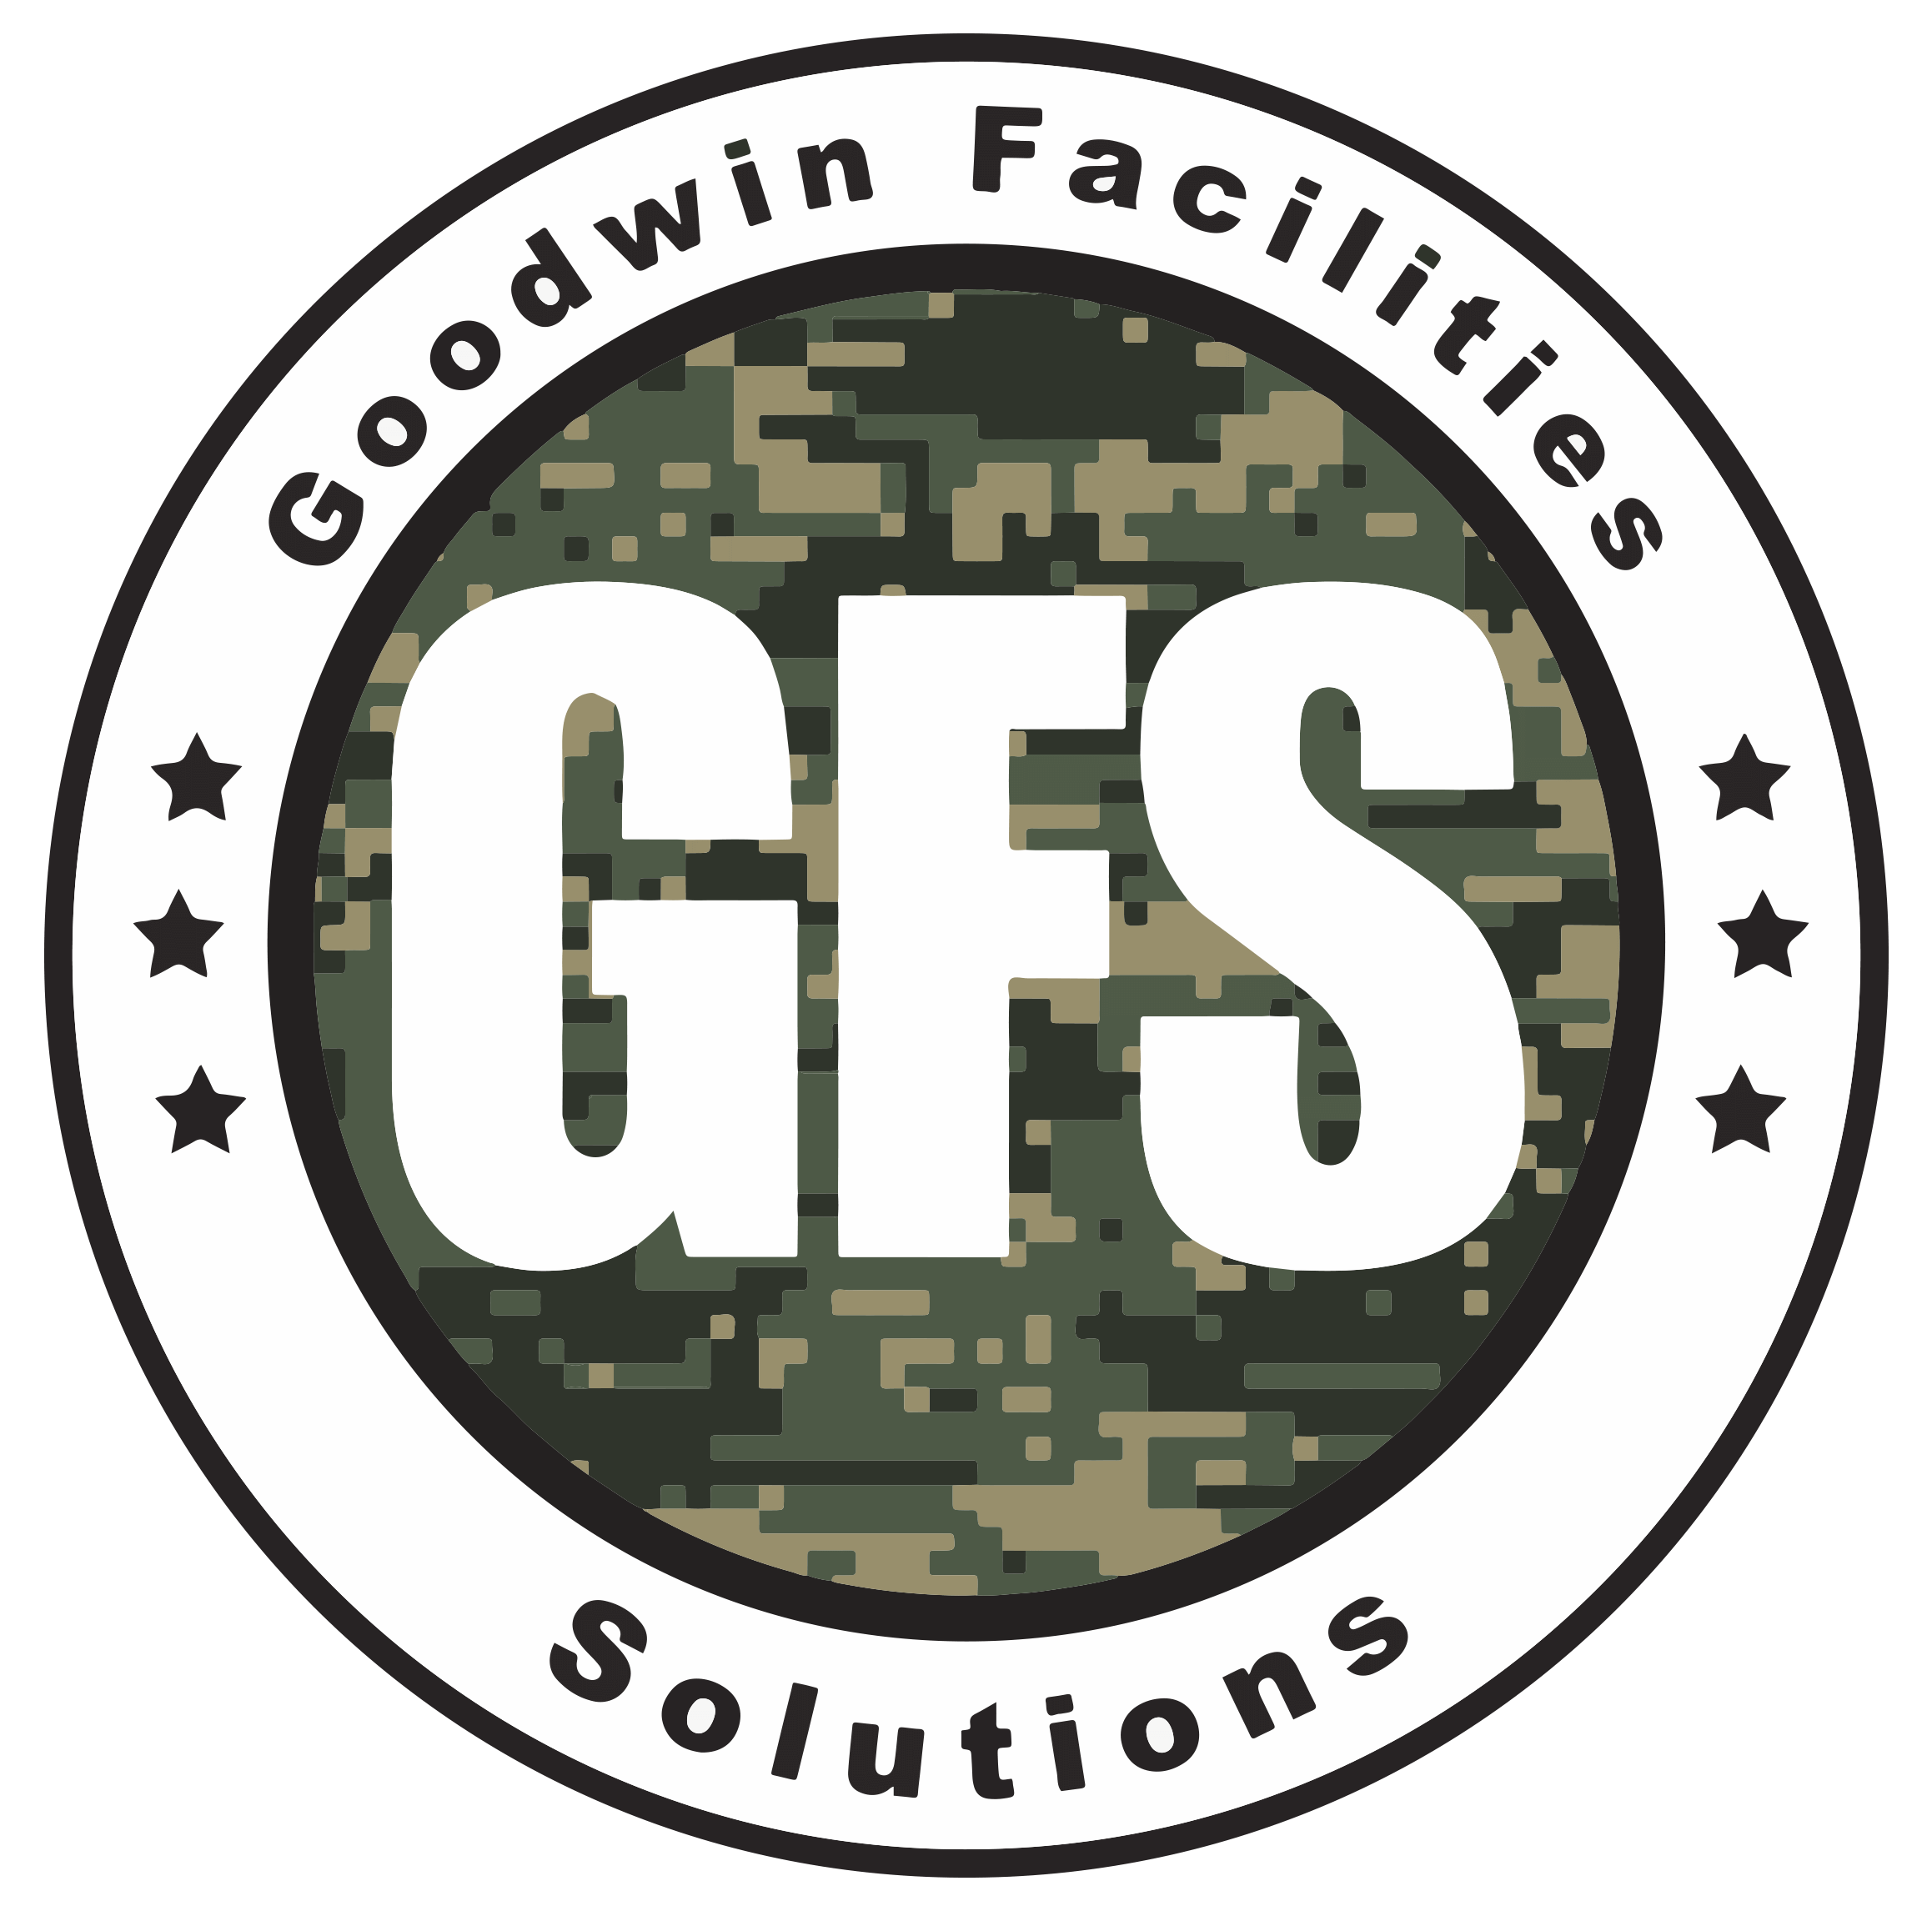 Goodwin Facilities Solutions